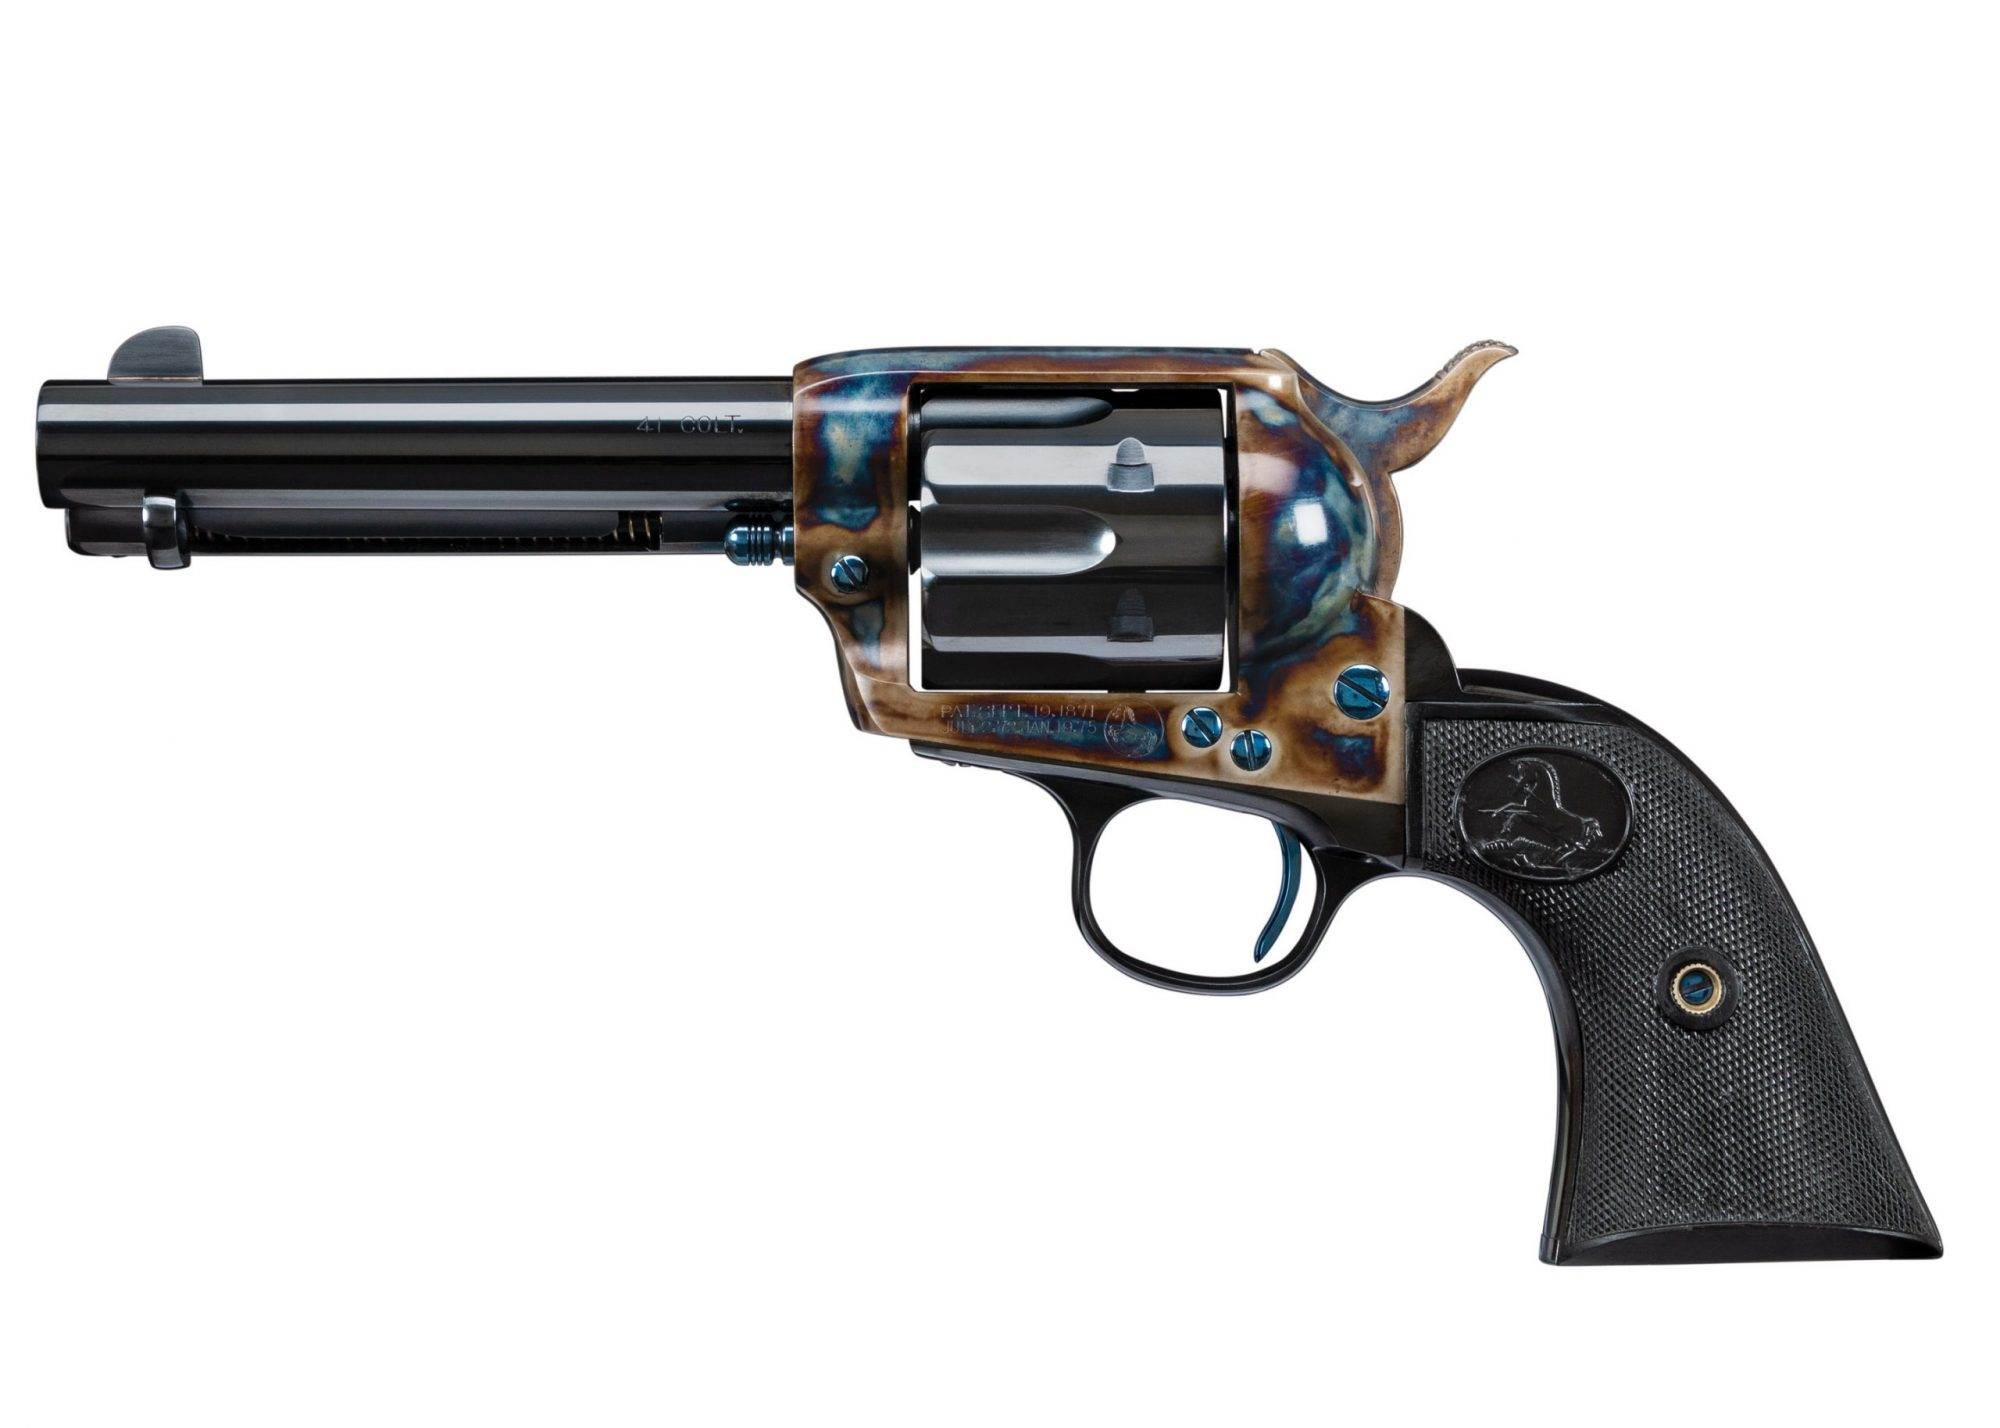 Photo of a restored Colt Single Action Army revolver from 1876, restored by Turnbull Restoration Co. of Bloomfield, NY